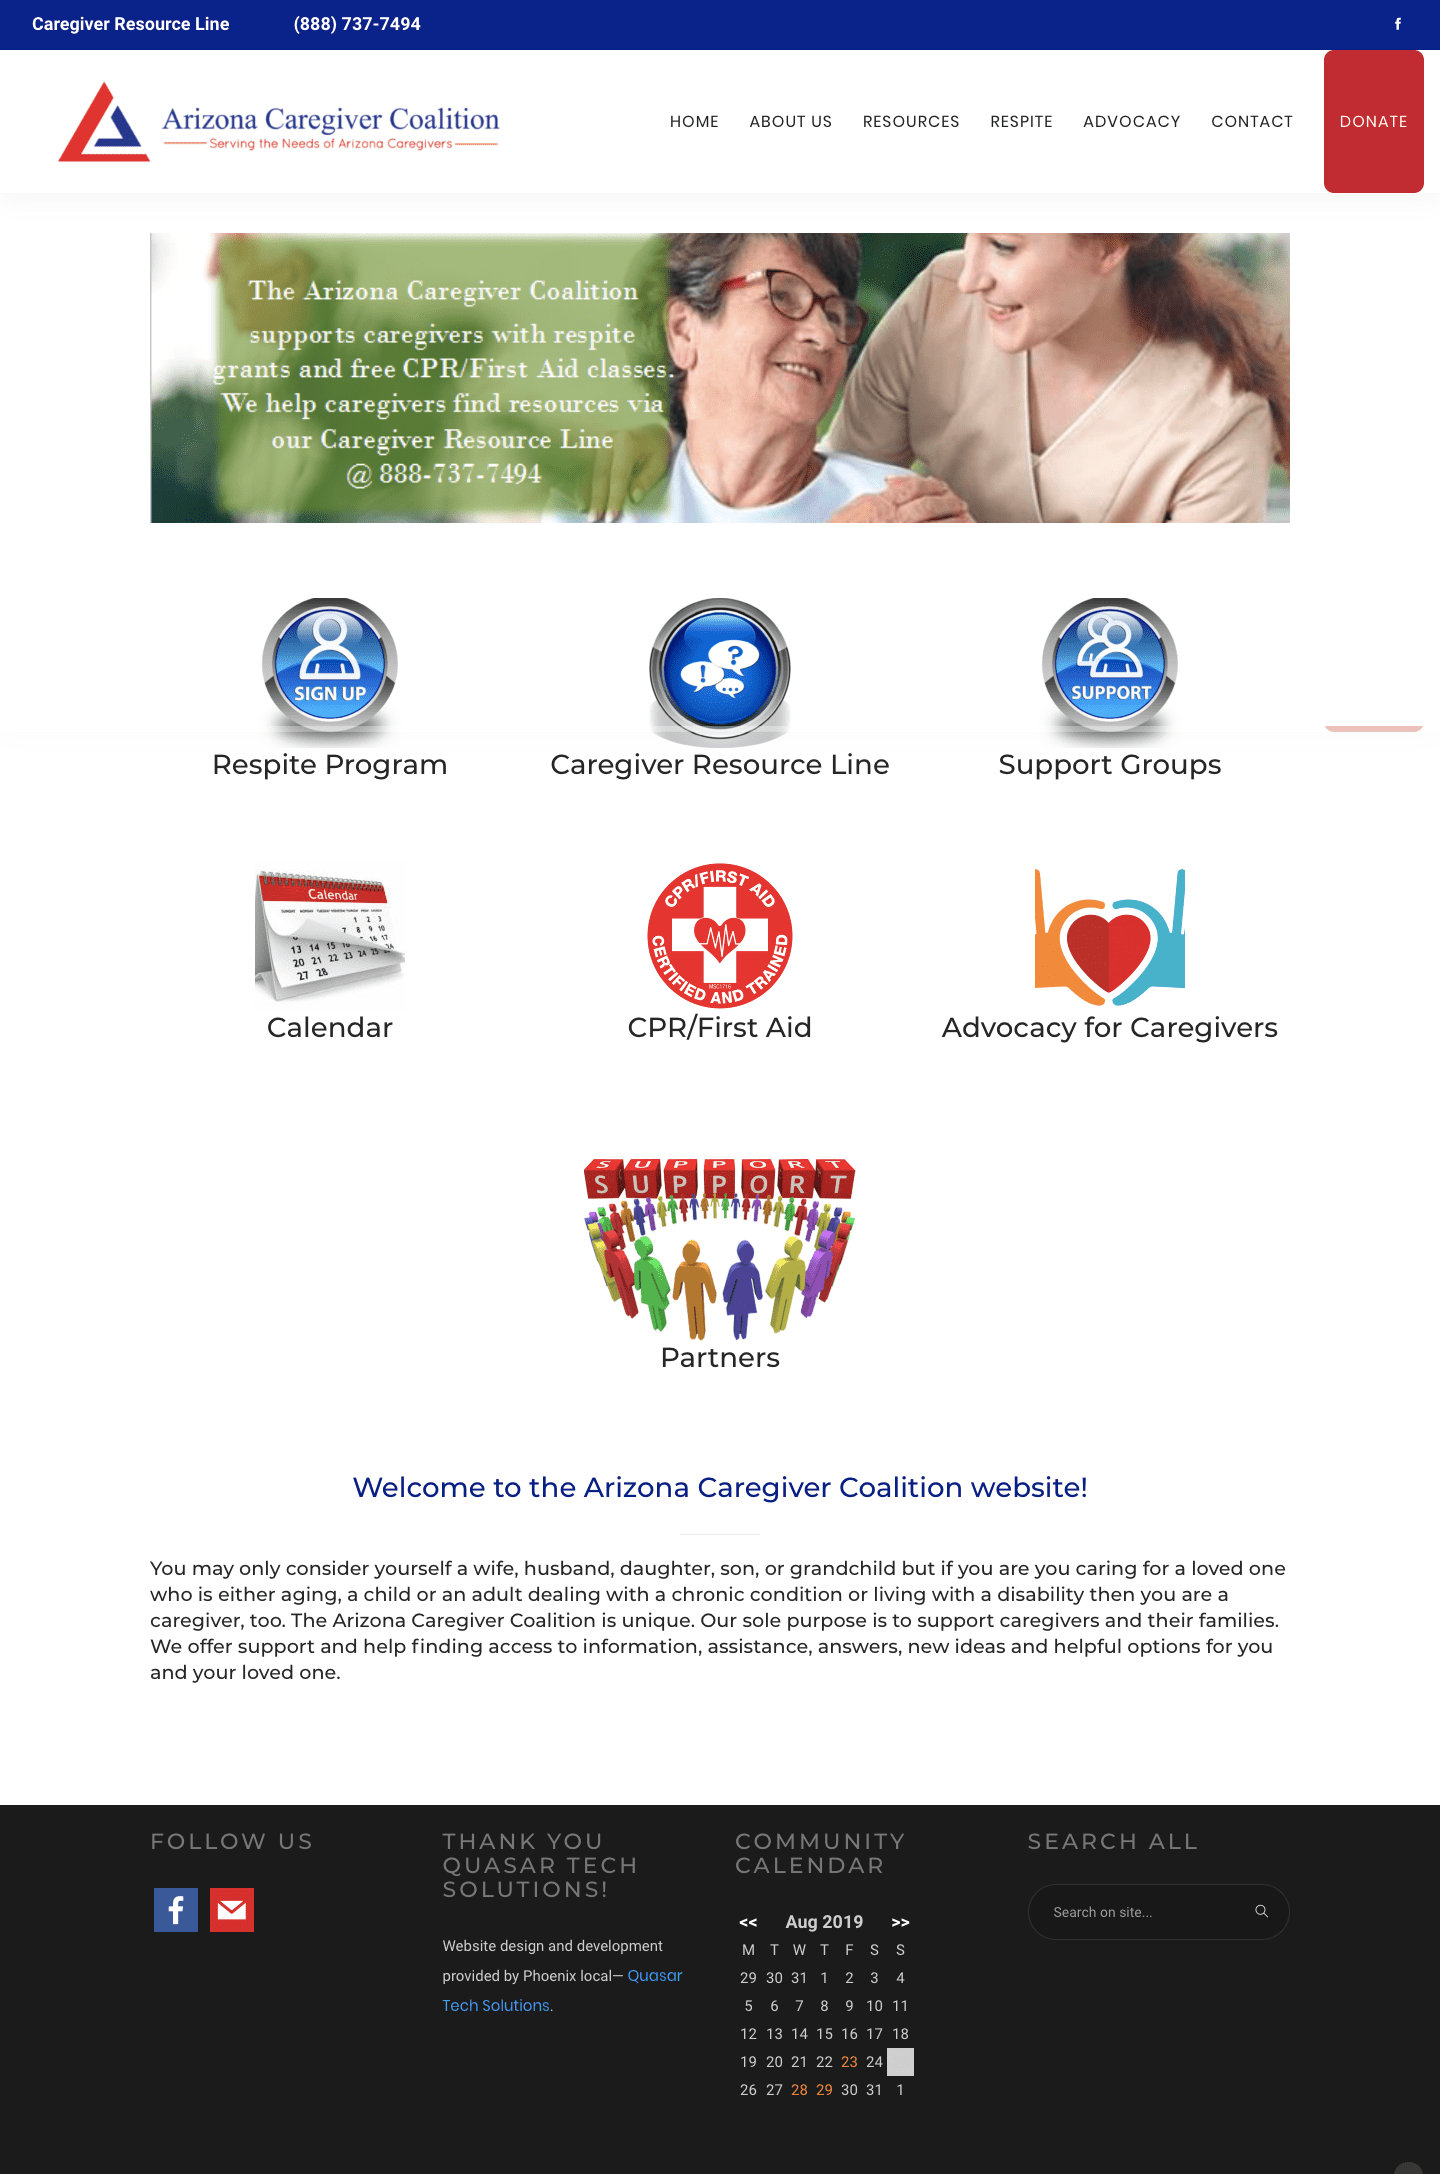 Arizona Caregiver Coalition